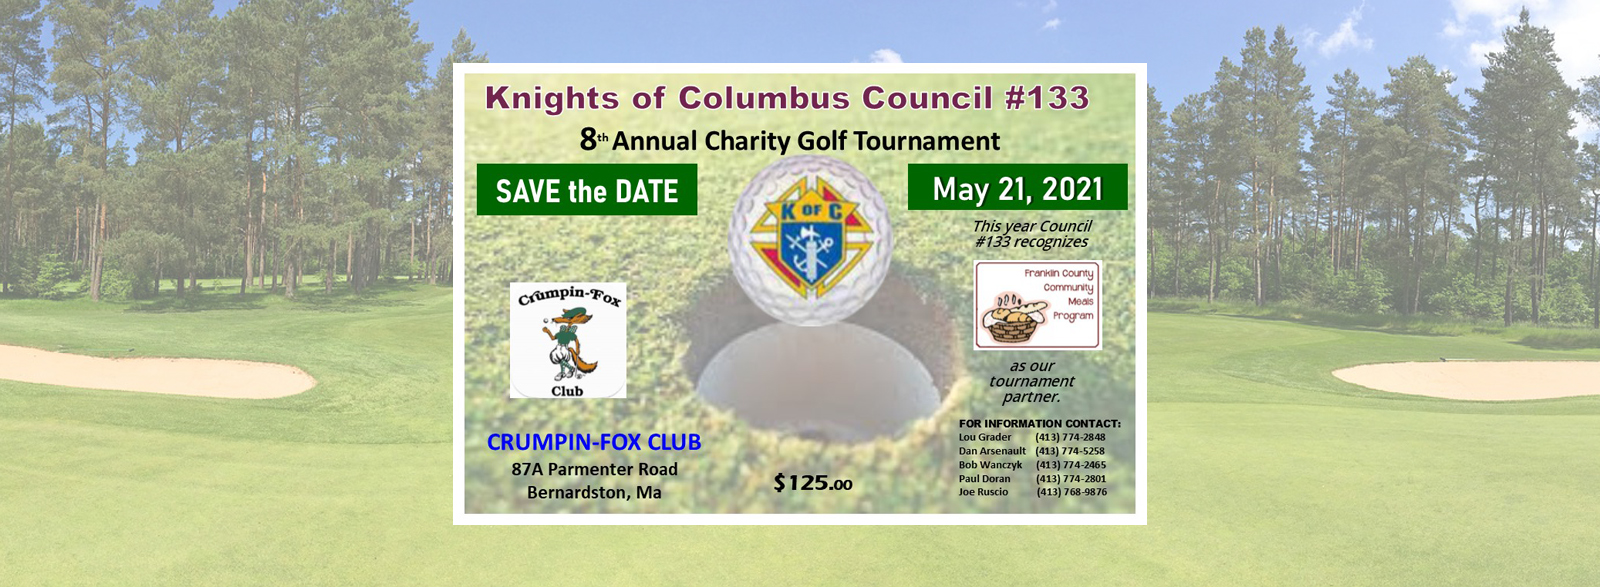 Knights of Columbus Golf Tournament 2021